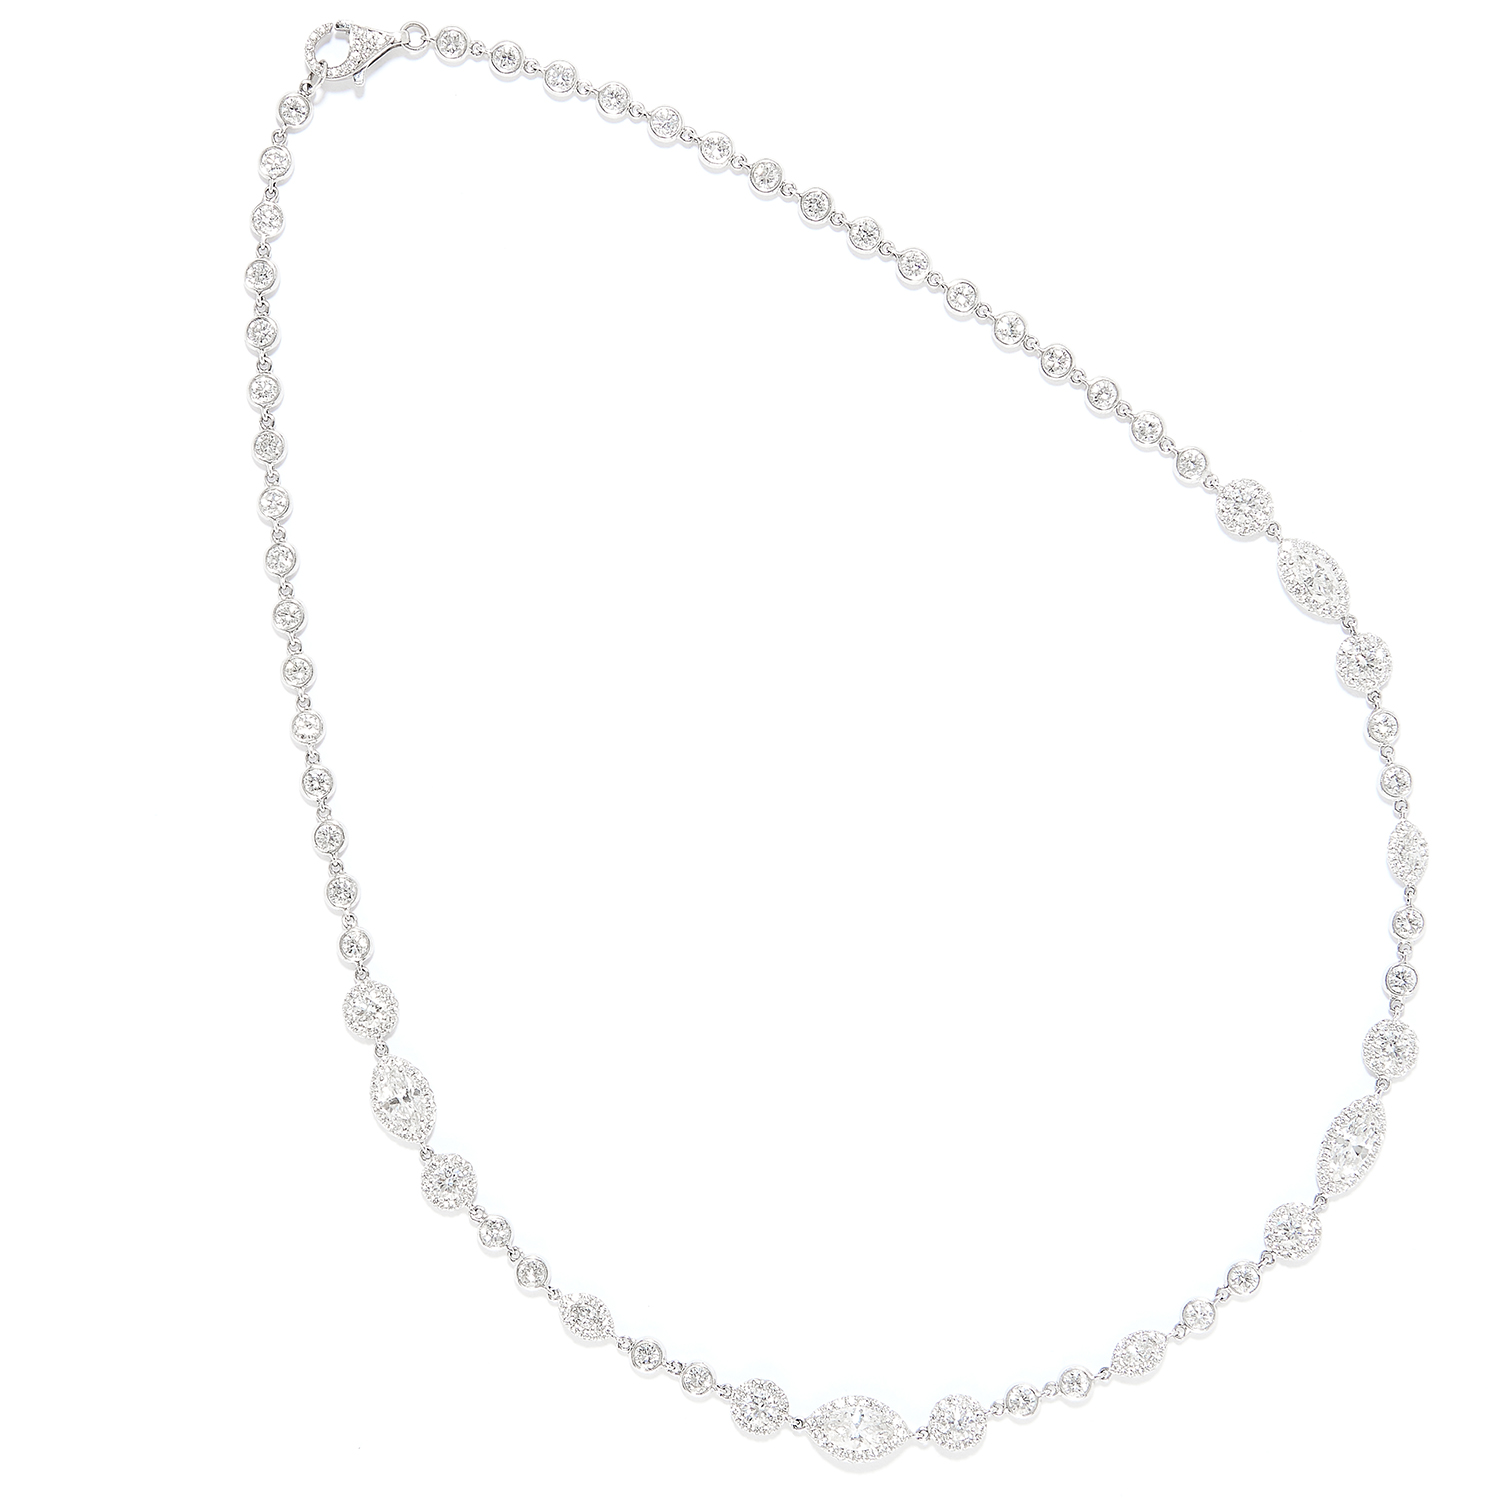 DIAMOND RIVIERA NECKLACE in 18ct white gold, set with round and marquise cut diamonds totalling